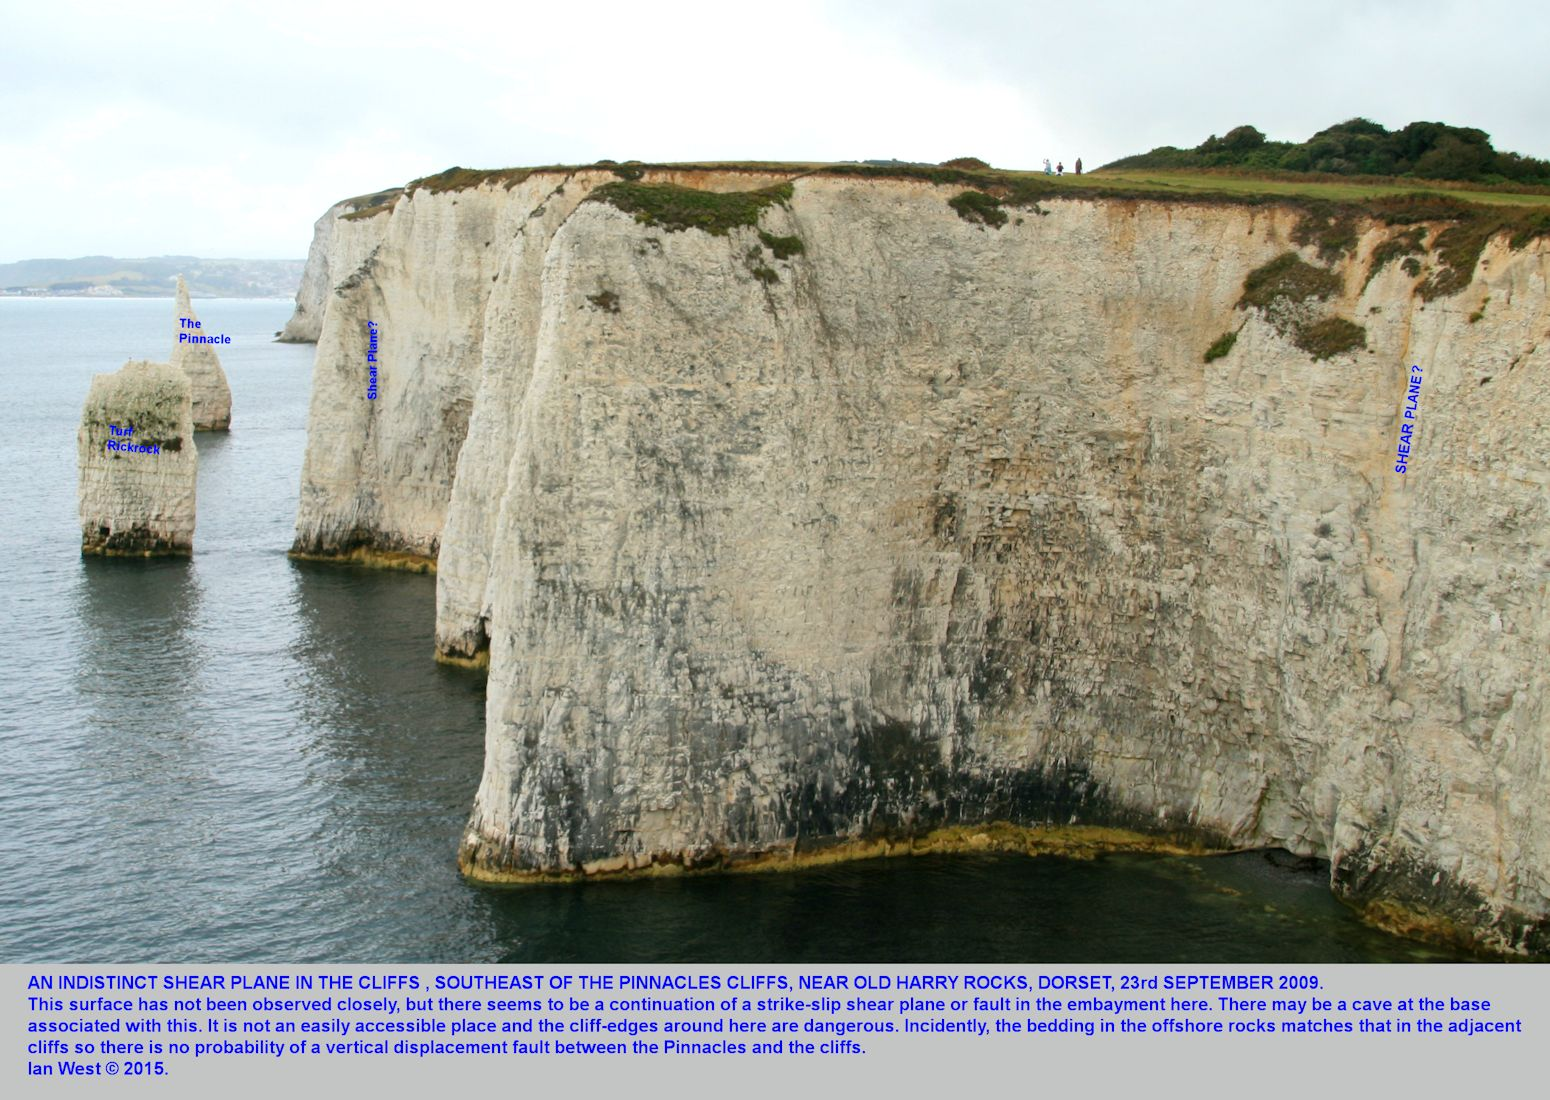 A strike-slip, shear plane in the cliffs near the Pinnacles, Old Harry Rocks, Dorset, September 2009